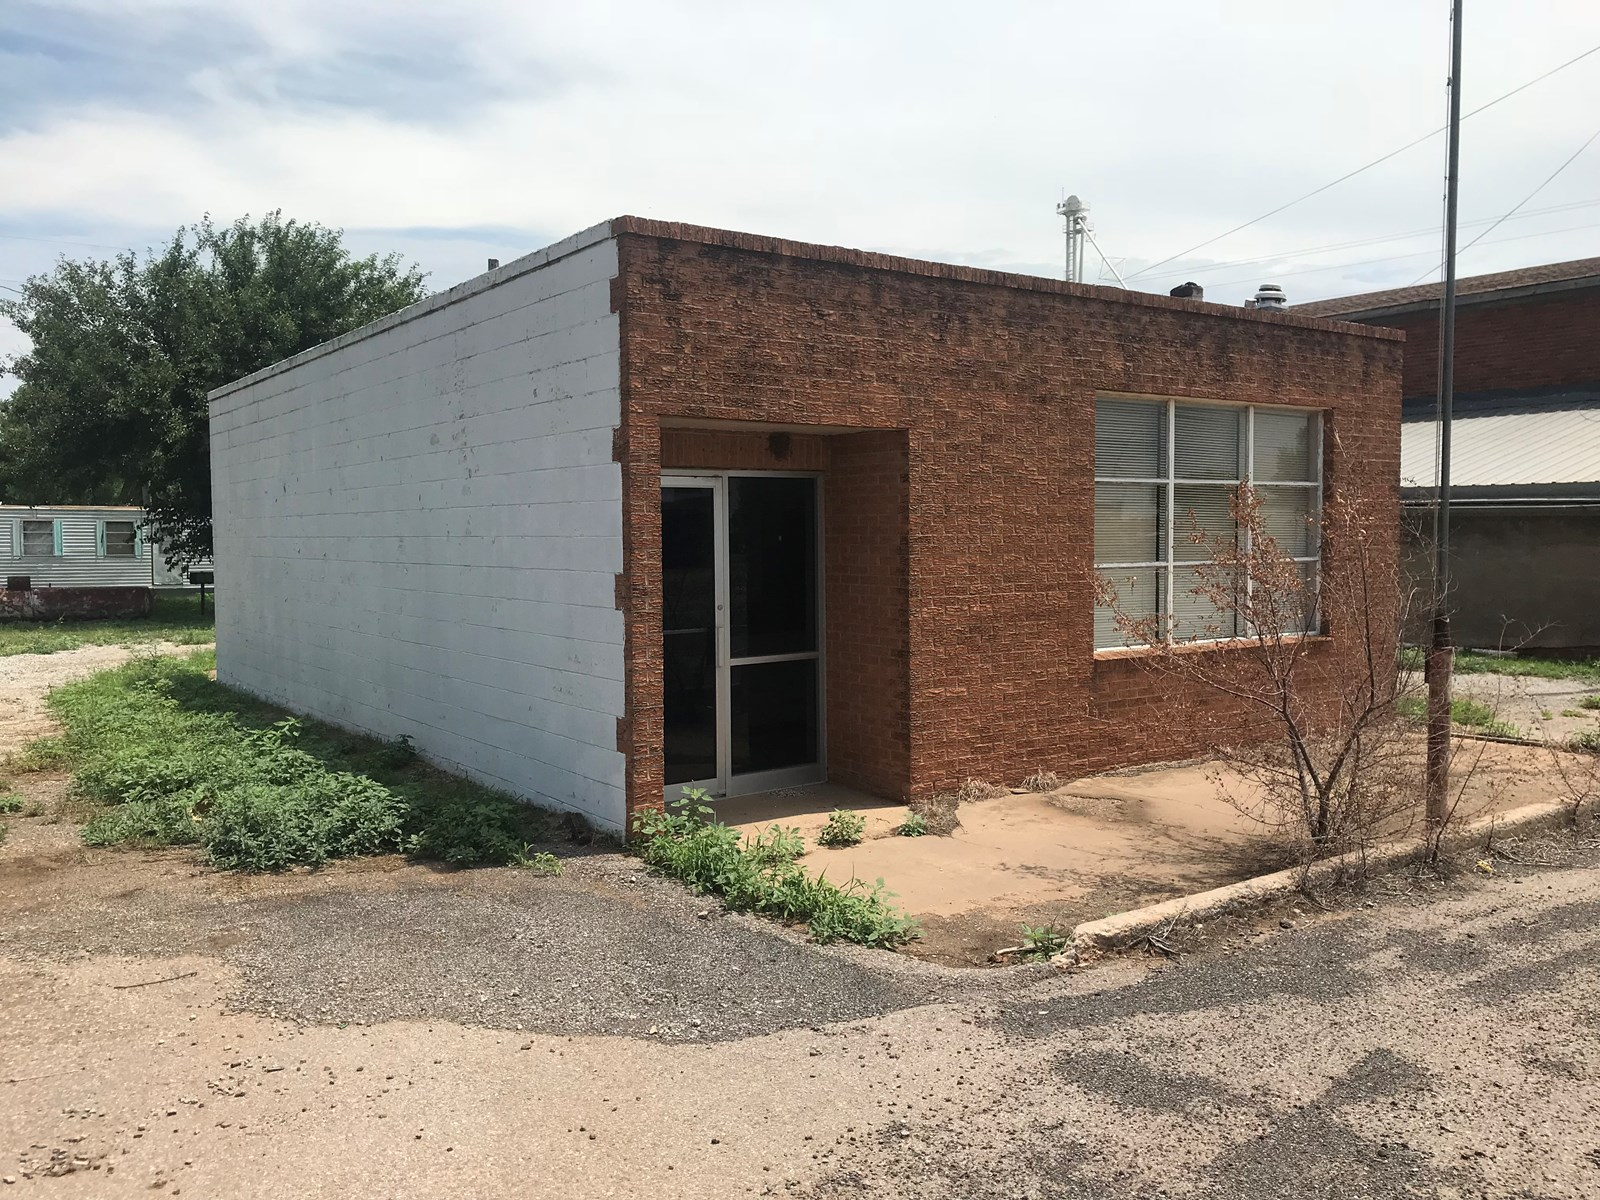 Commercial Building for Sale, Putnam, OK 73659 Dewey, Co.